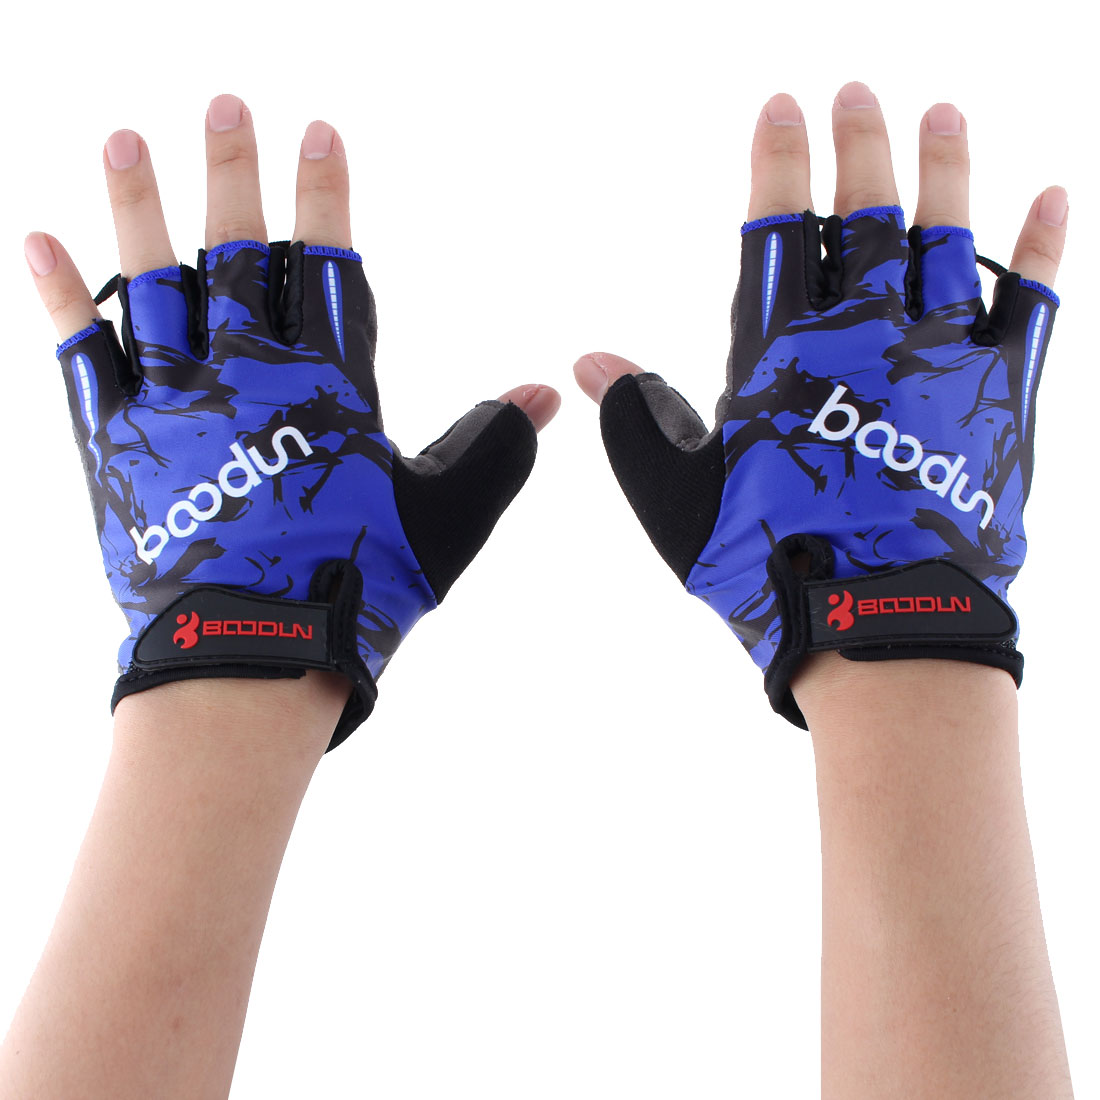 BOODUN Authorized Polyester Exercise Sports Gym Lifting Training Bodybuilding Protector Half Finger Fitness Gloves Blue L Pair